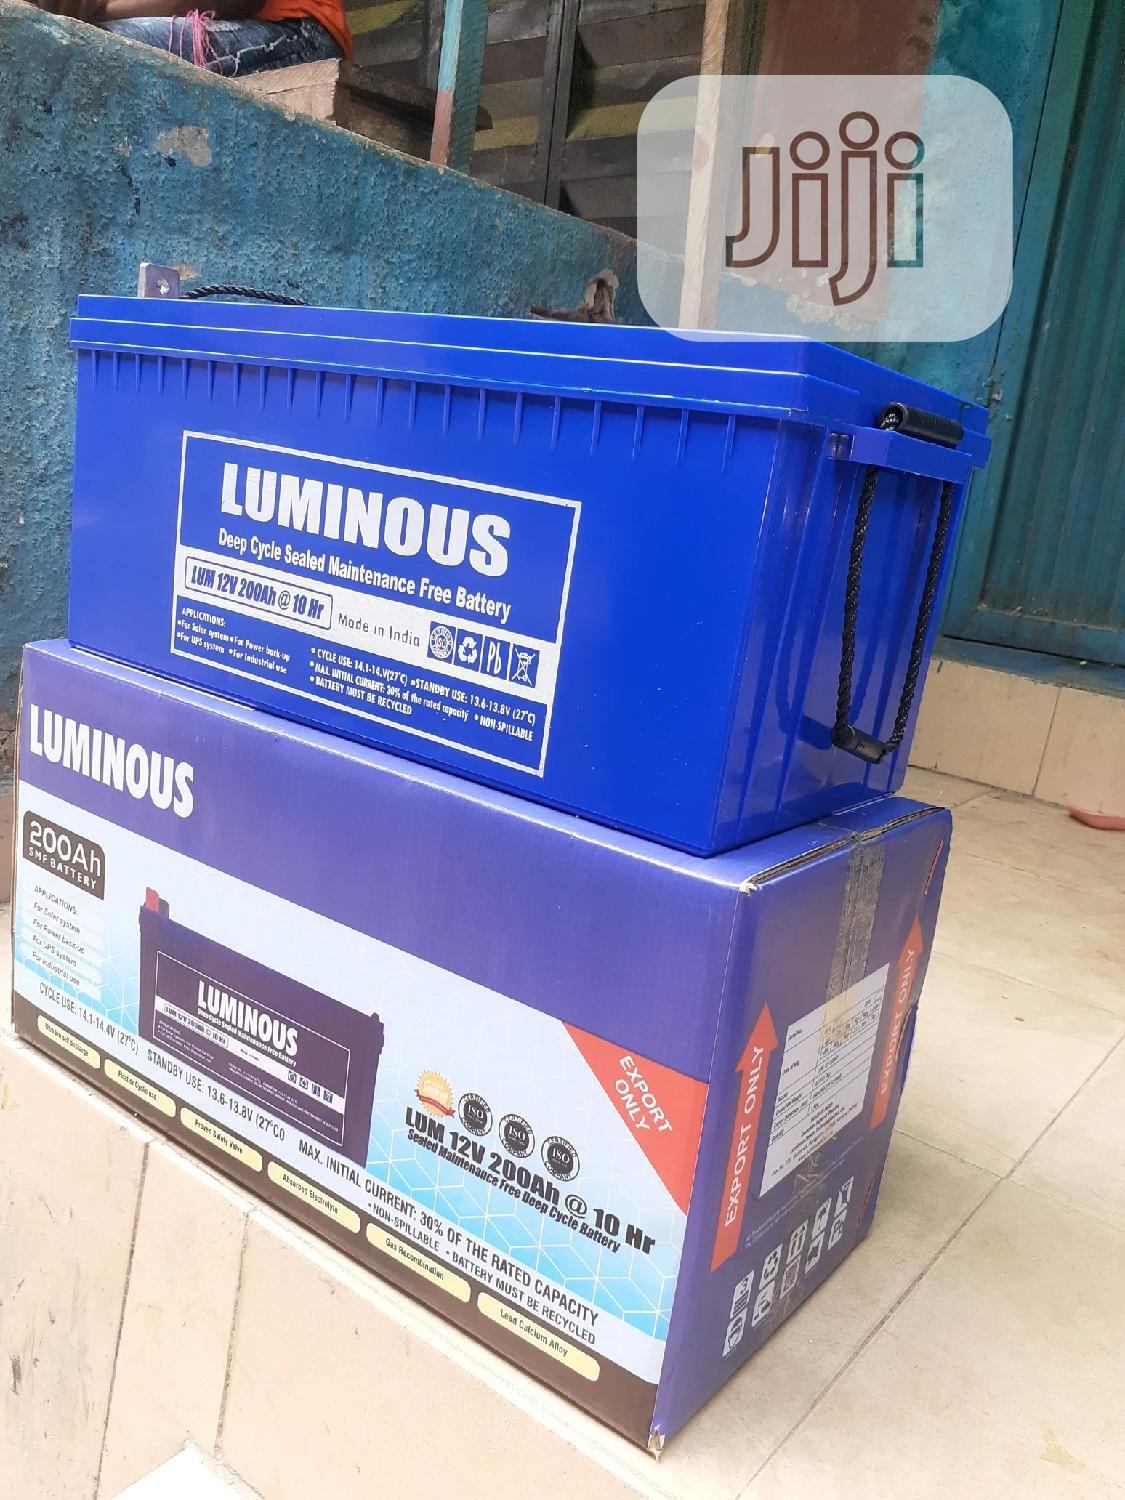 12v 200ah Luminous Battery Is Available